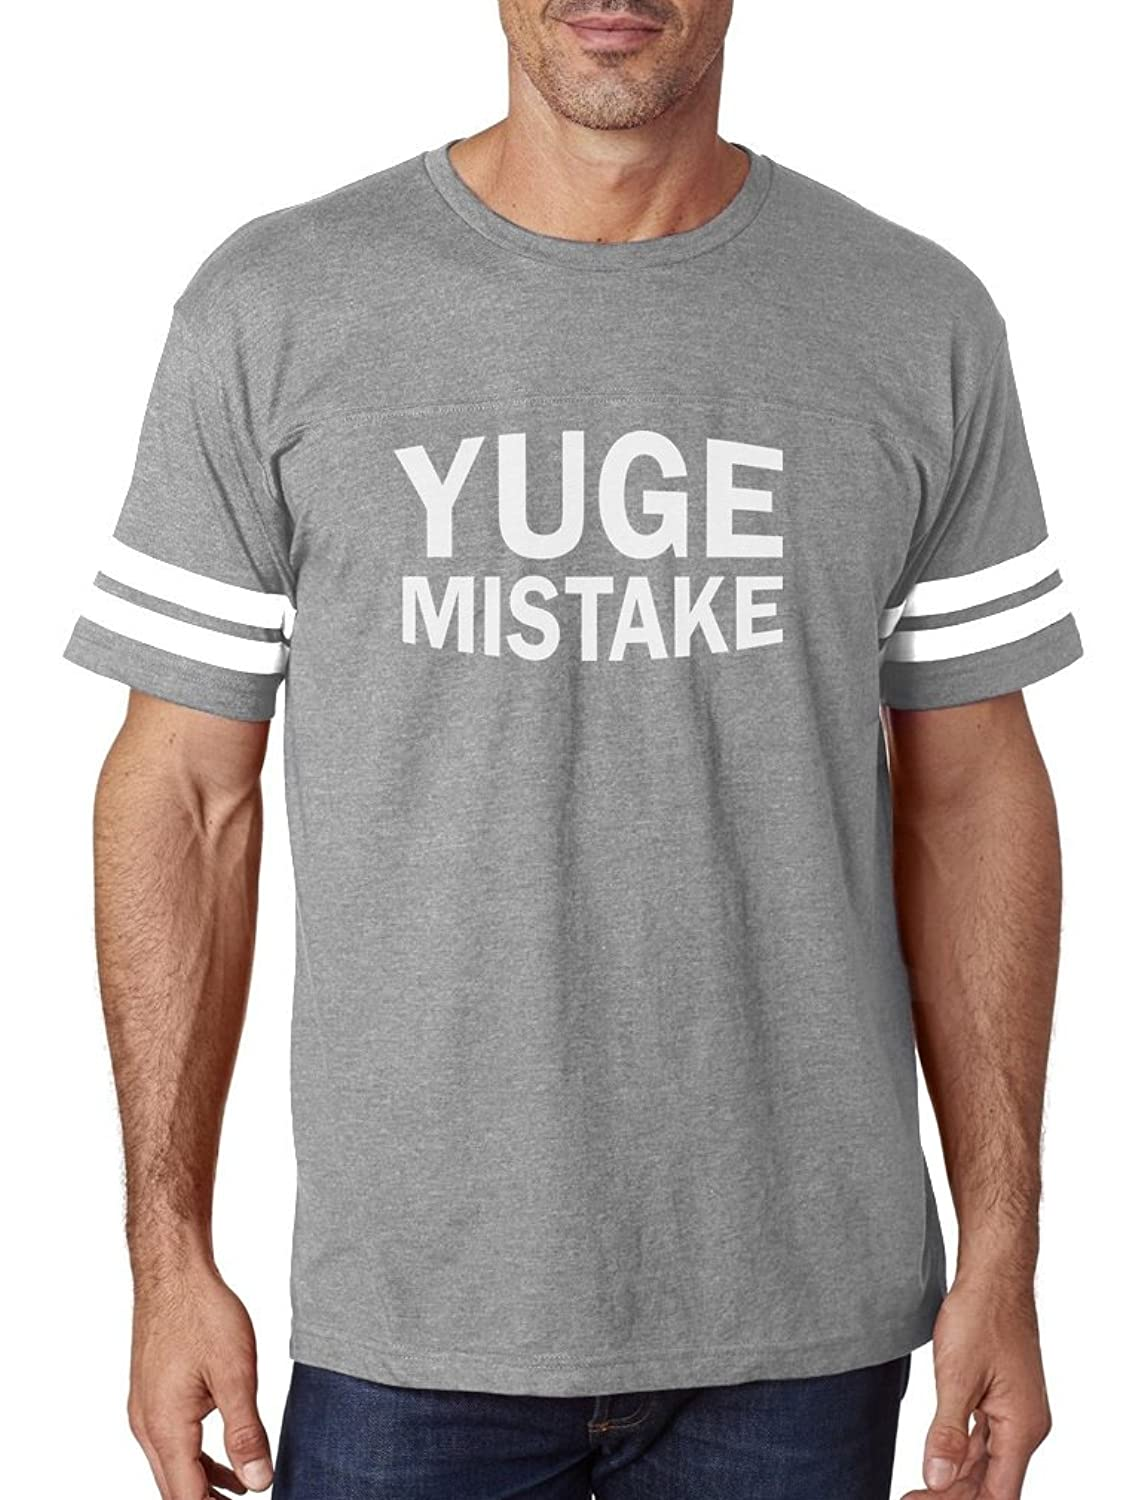 YUGE Mistake Funny Political Protest Anti Trump Football Jersey T-Shirt